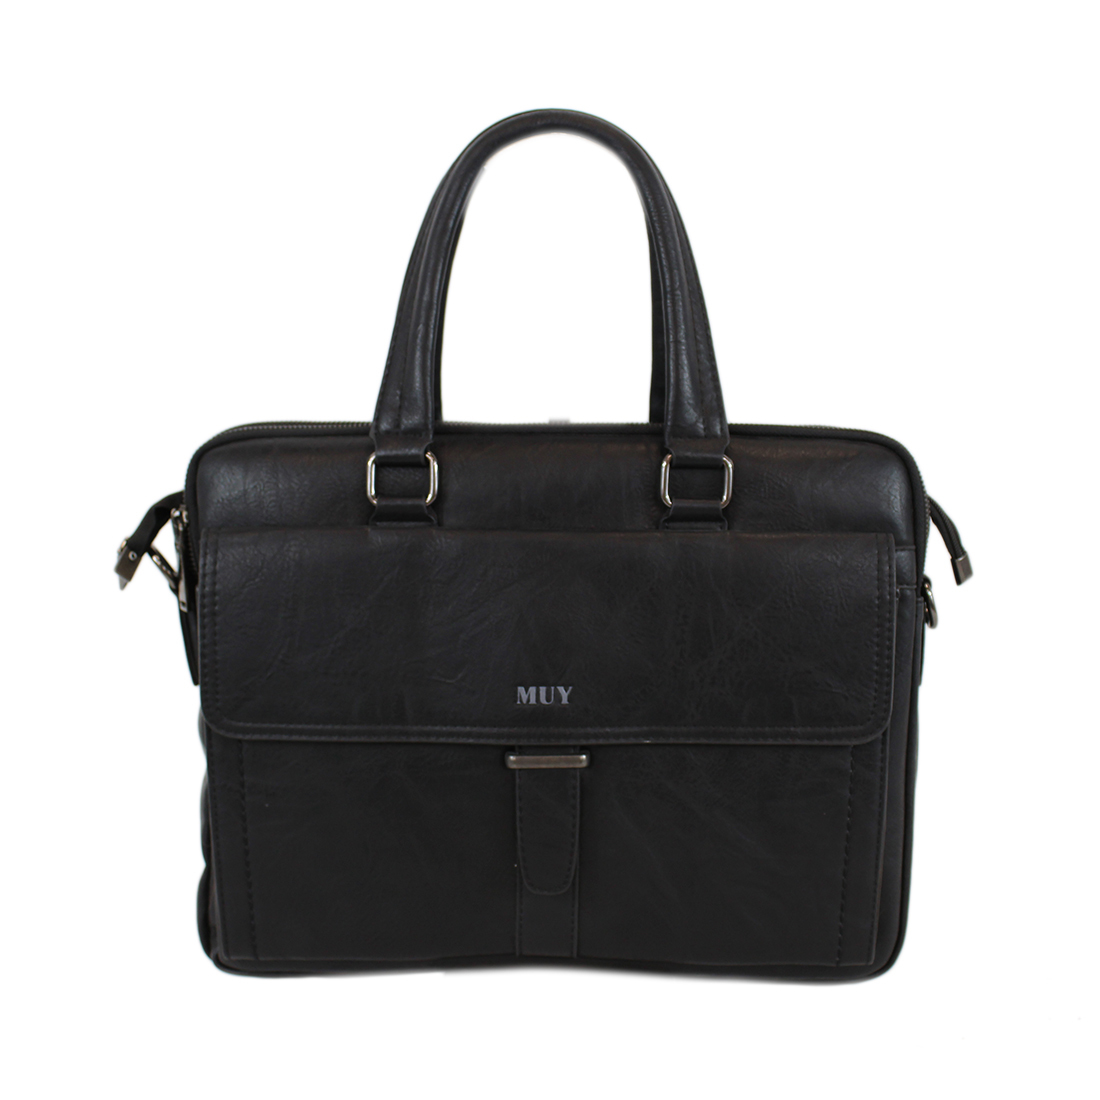 Real Leather- Flap infront